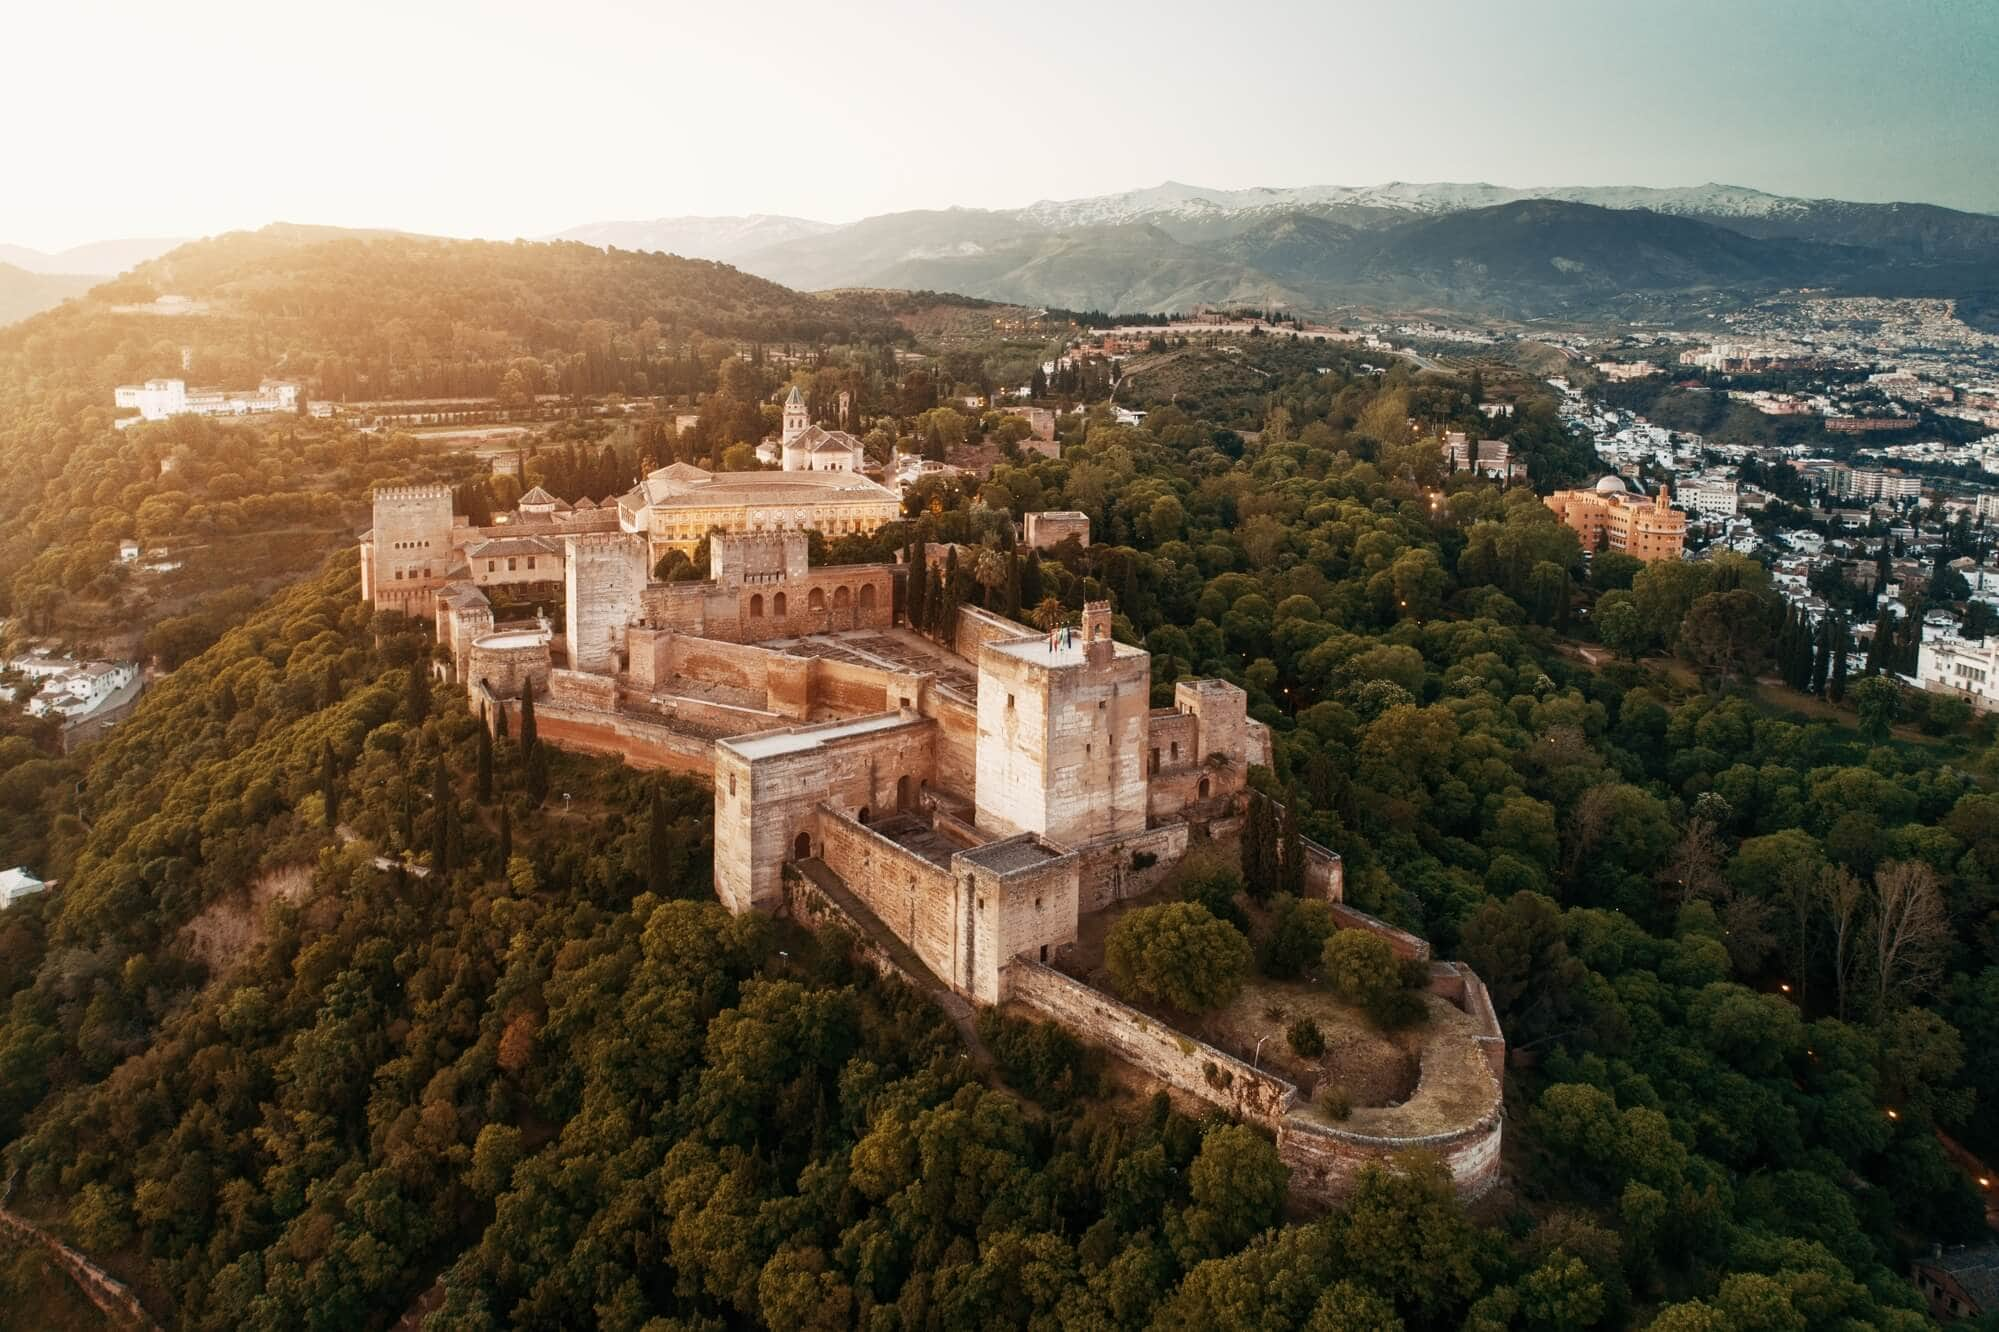 Spain quotes and puns for Instagram captions - Bird's eye view of the impressive Alhambra in Granada